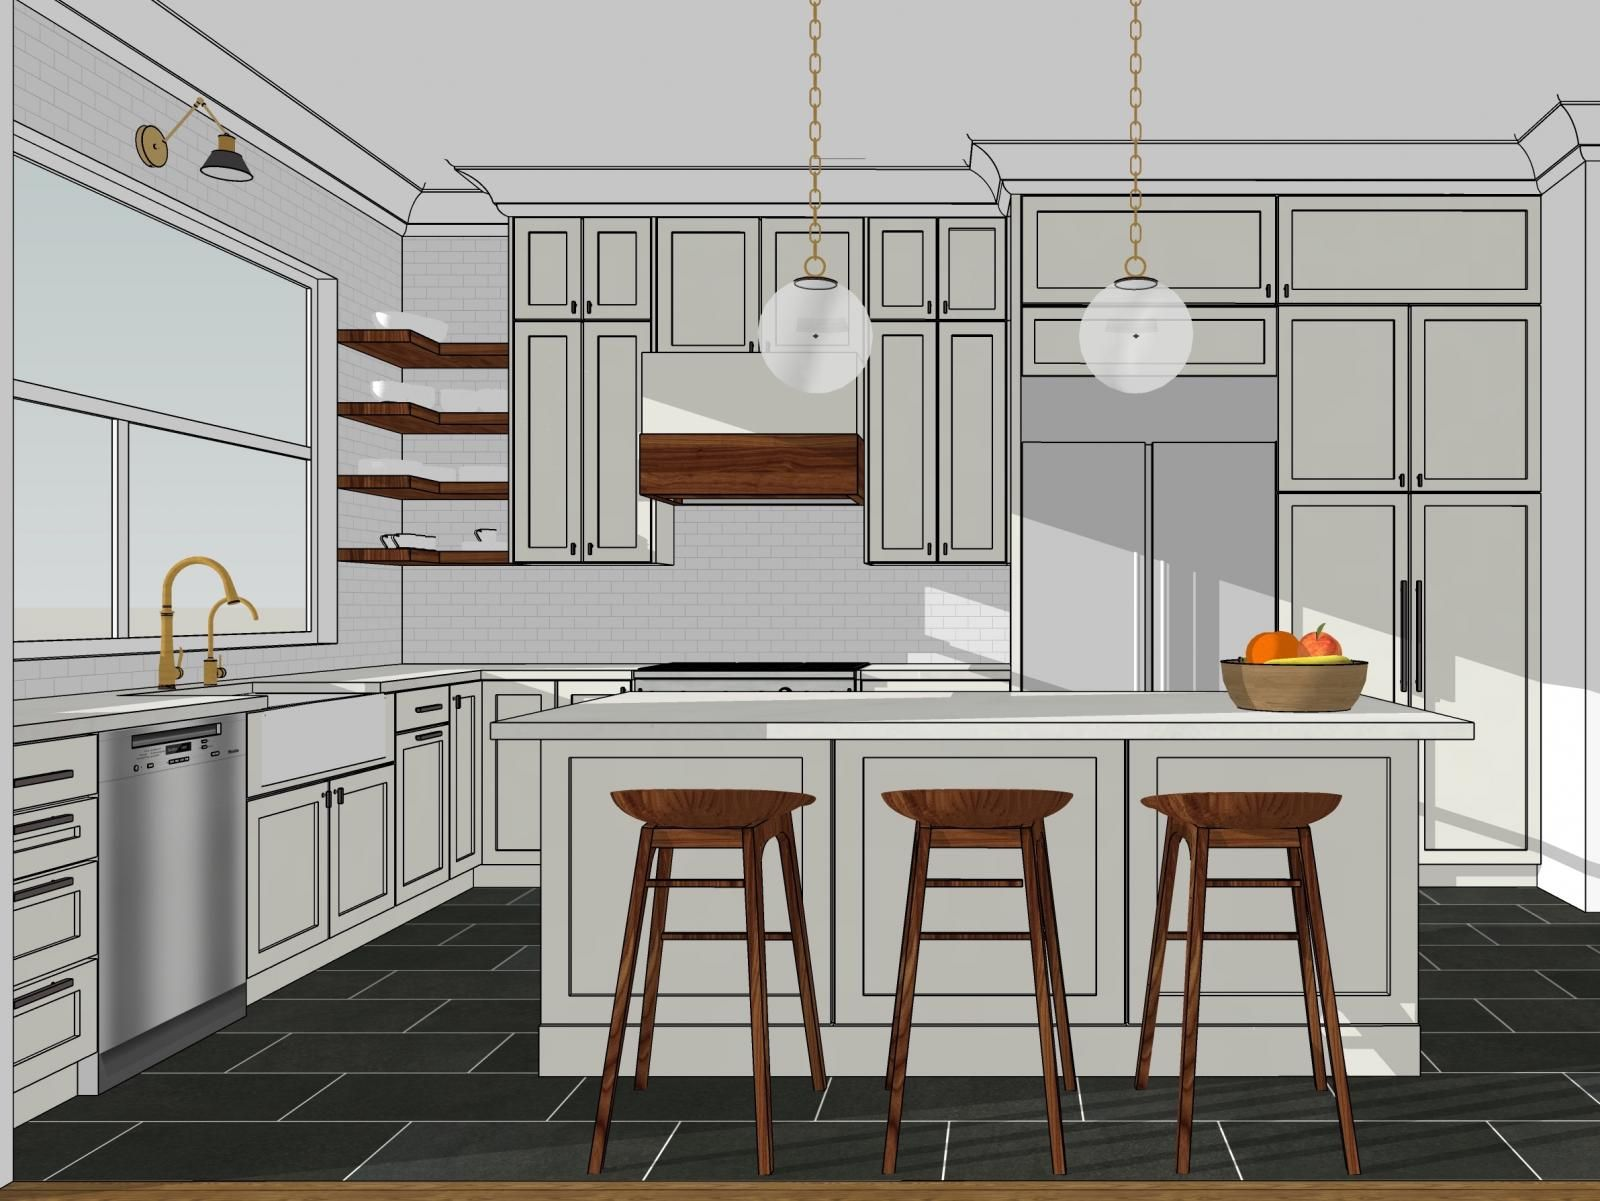 Clean bright kitchen modeled in sketchup free interior design software commercial also tips for rh pinterest